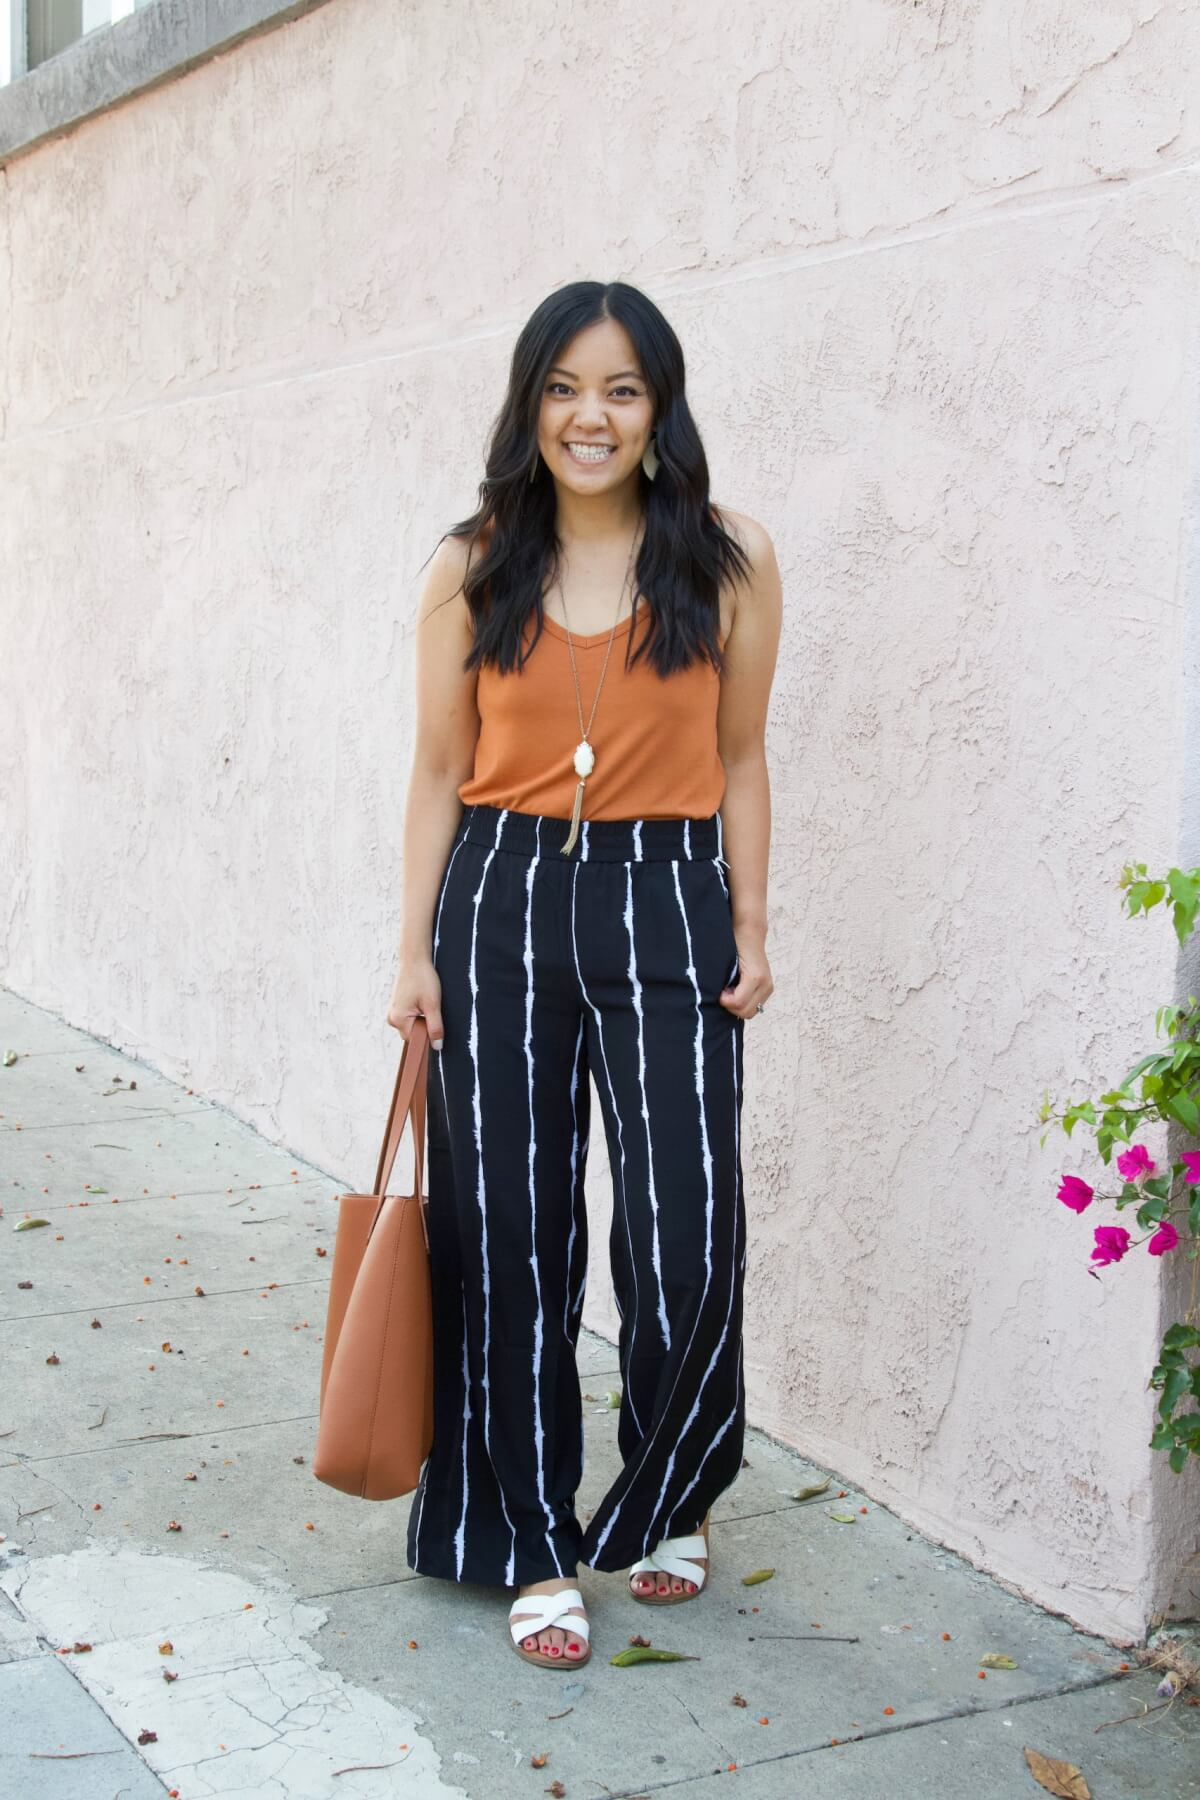 Nicer Casual Outfit for Summer to Early Fall Transition: pumpkin orange tank + black and white striped wide leg pants + white slide sandals + white earrings + pendant necklace + tan tote